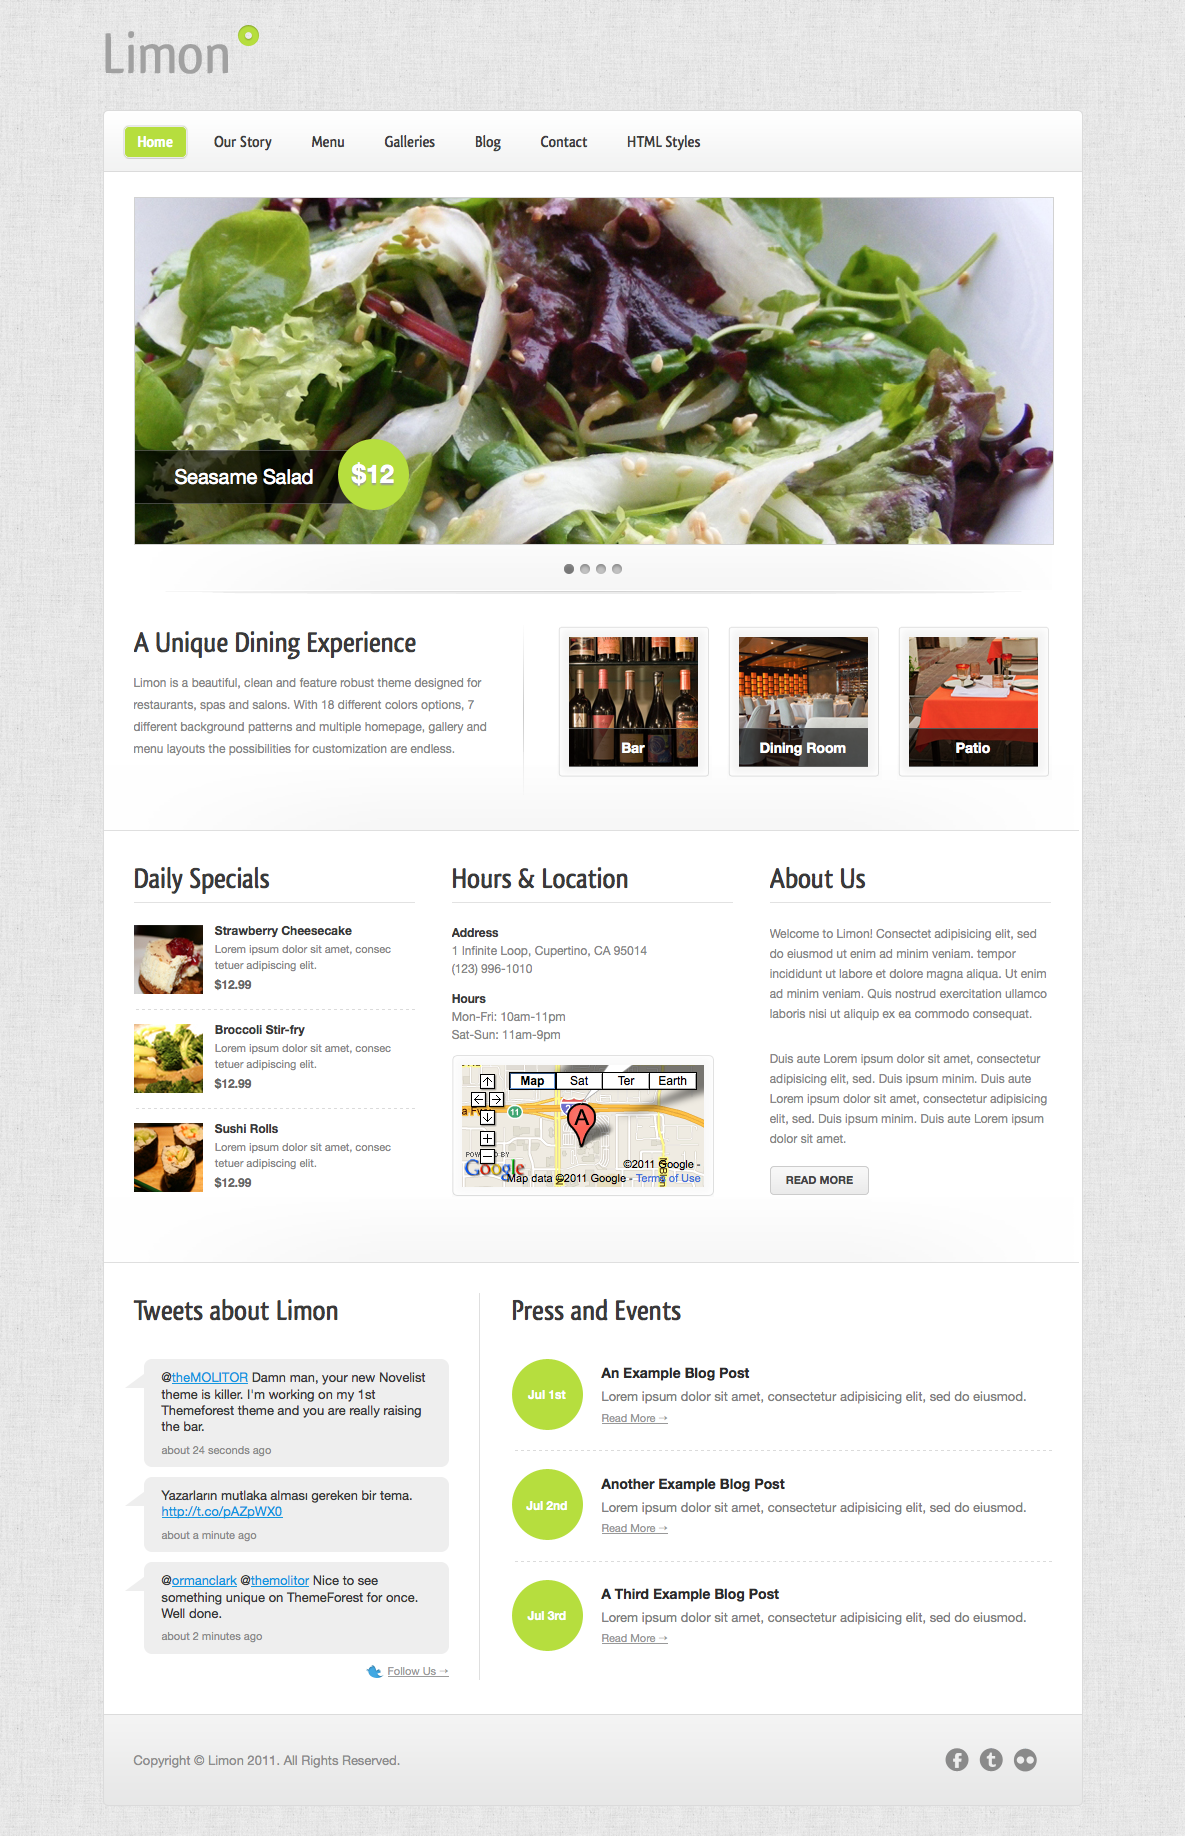 Limon - A Restaurant and Spa Theme - Homepage - Featuring 2 distinct slider options, twitter feed, and more.